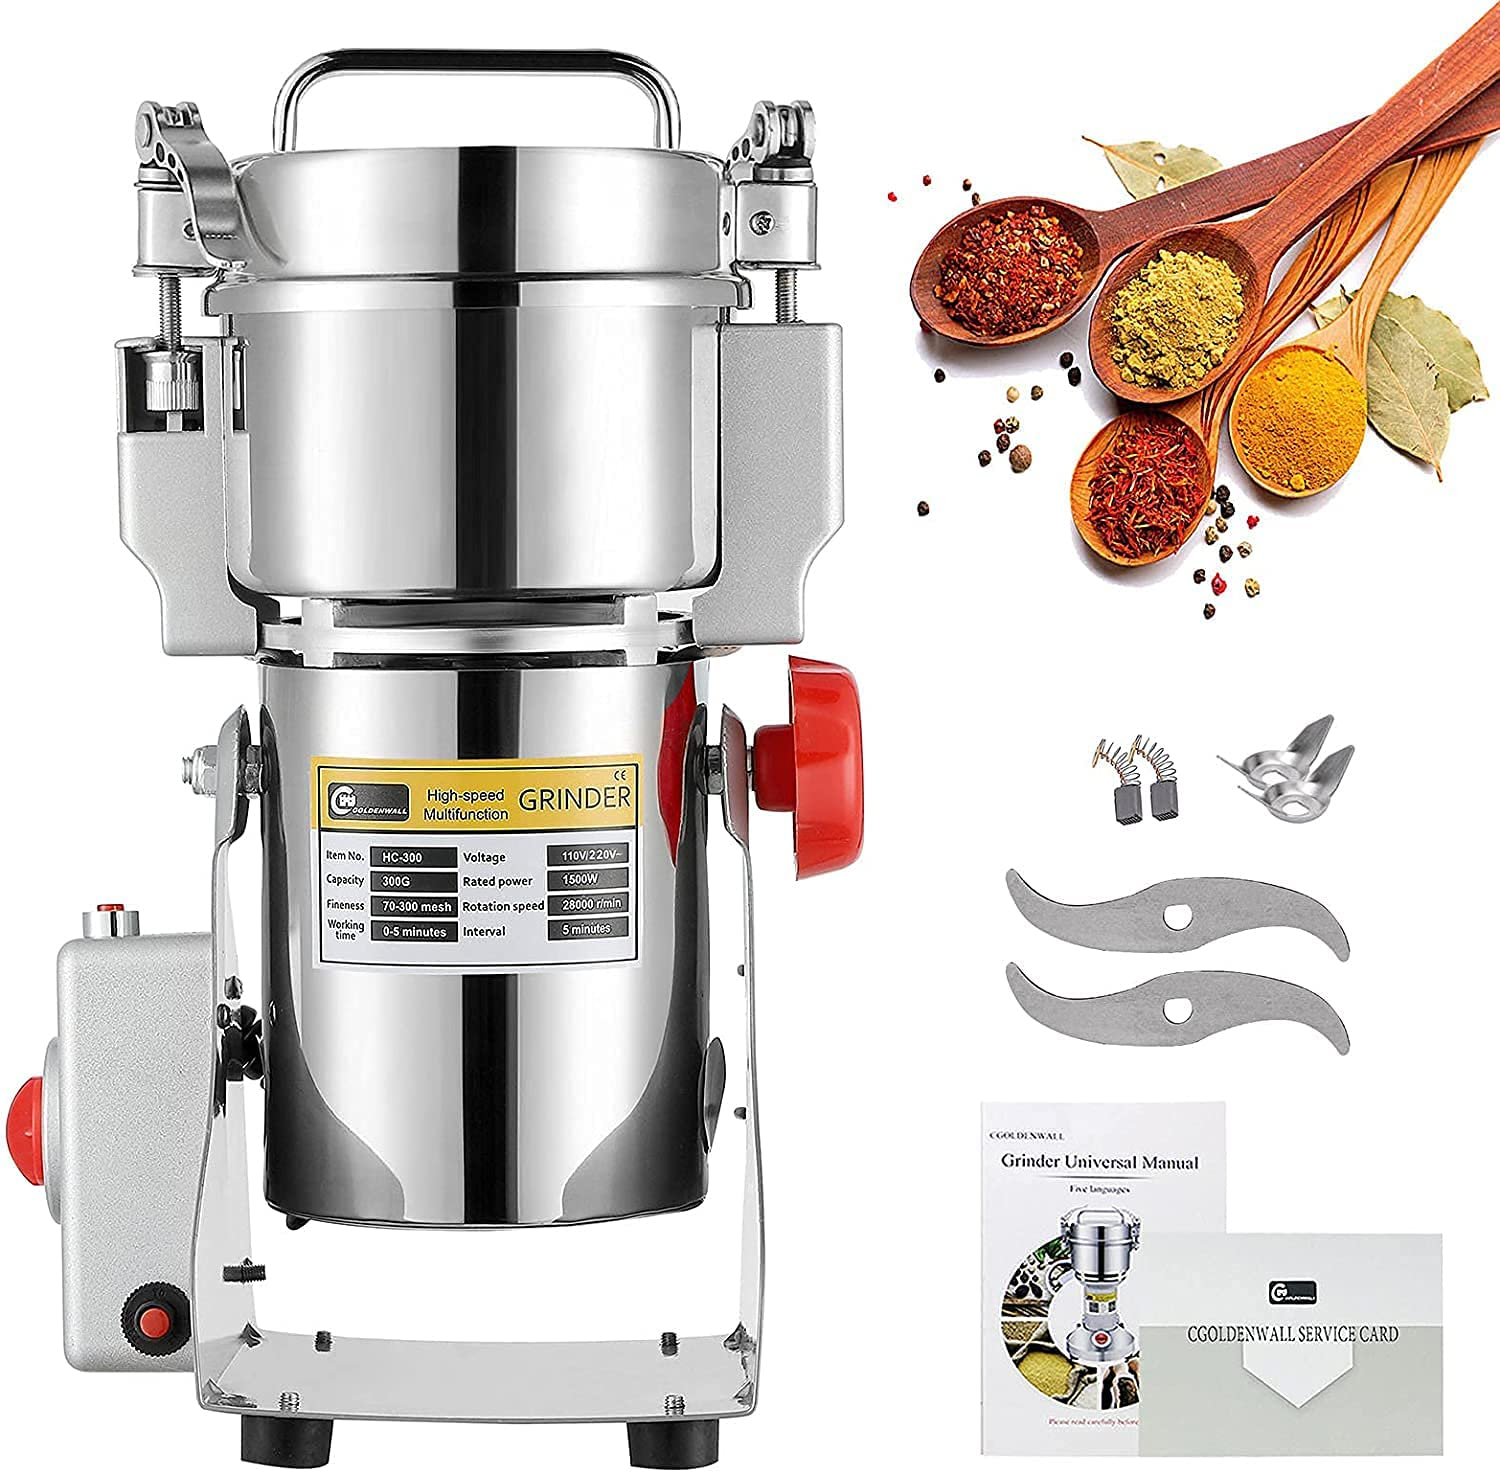 CGOLDENWALL 300g High-Speed Selling Electric Stainles New products world's highest quality popular Grain Grinder Mill